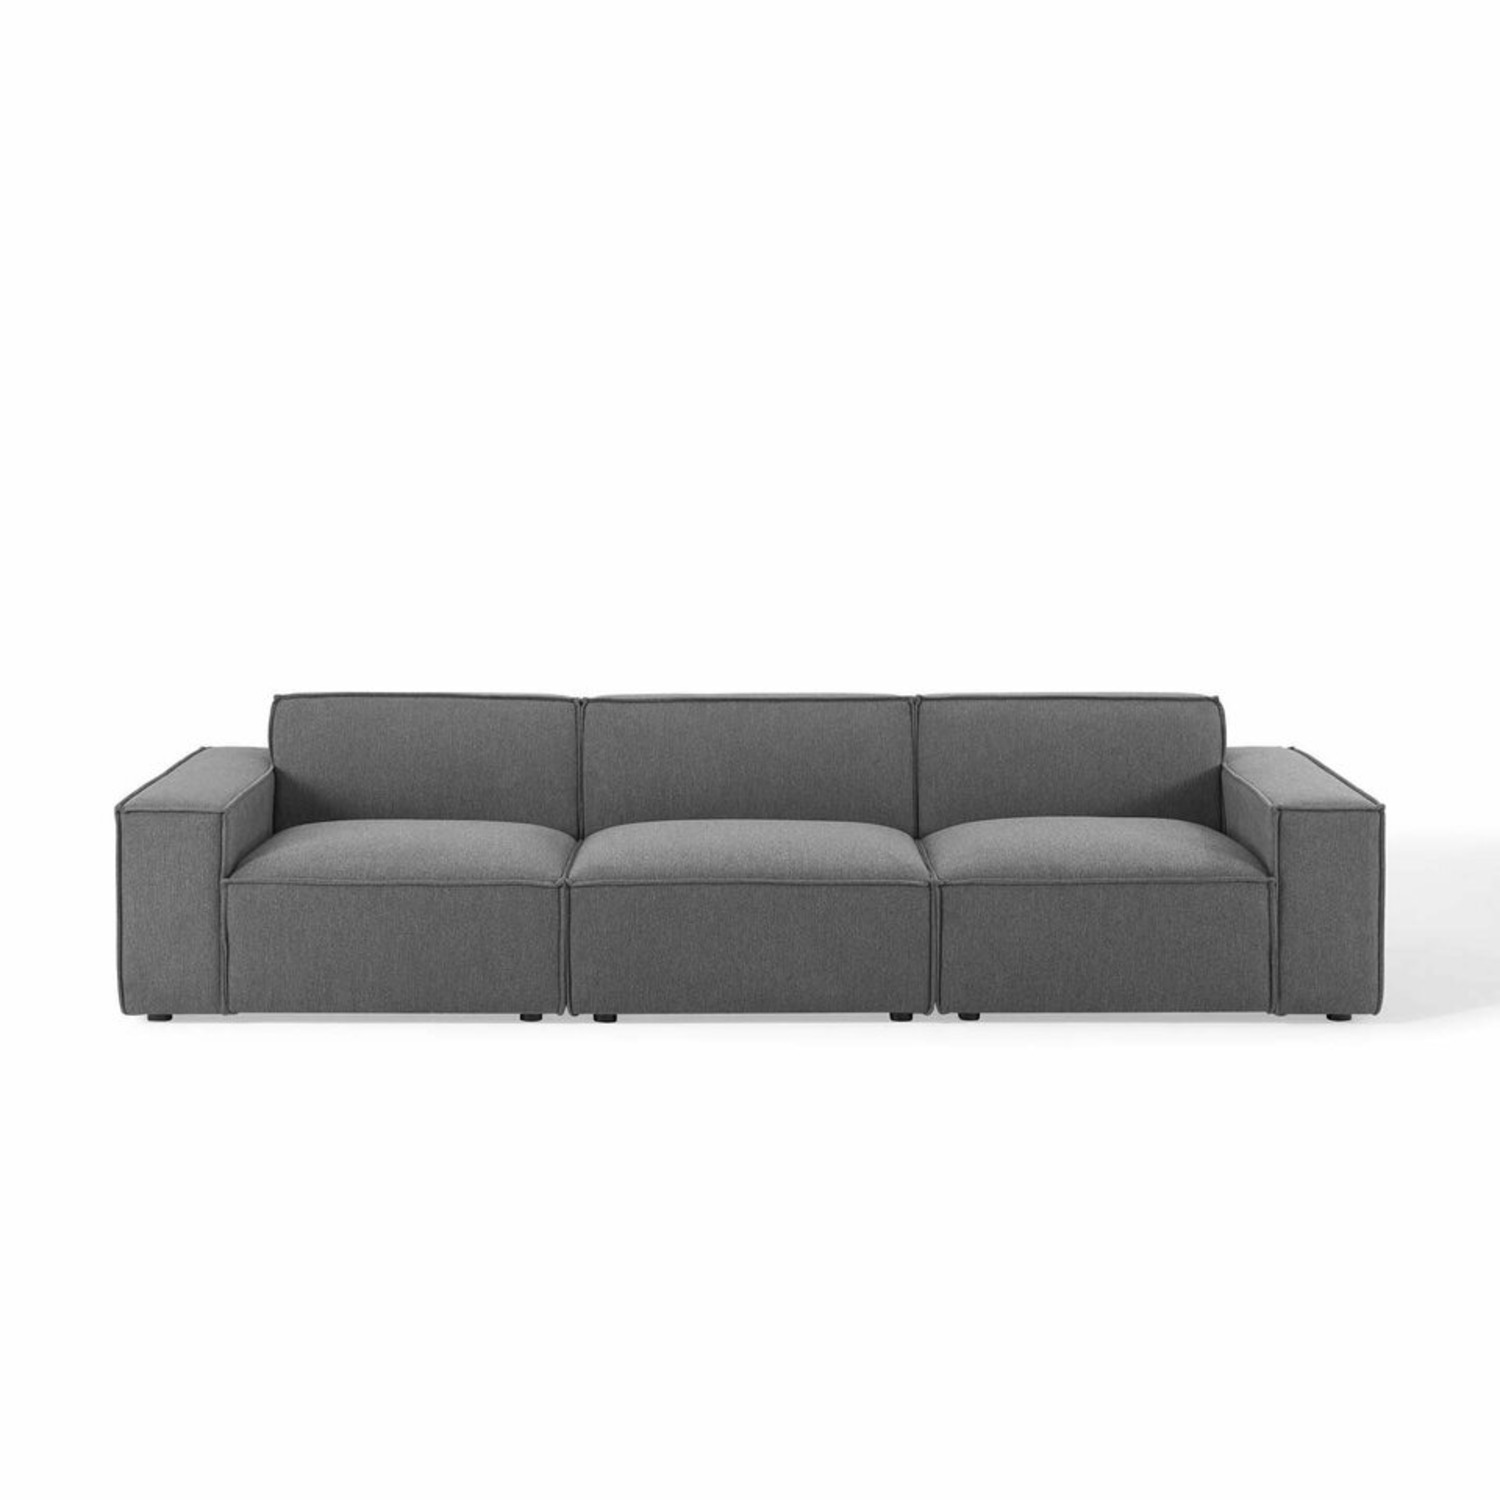 3-Piece Sectional Sofa In Charcoal Upholstery - image-1